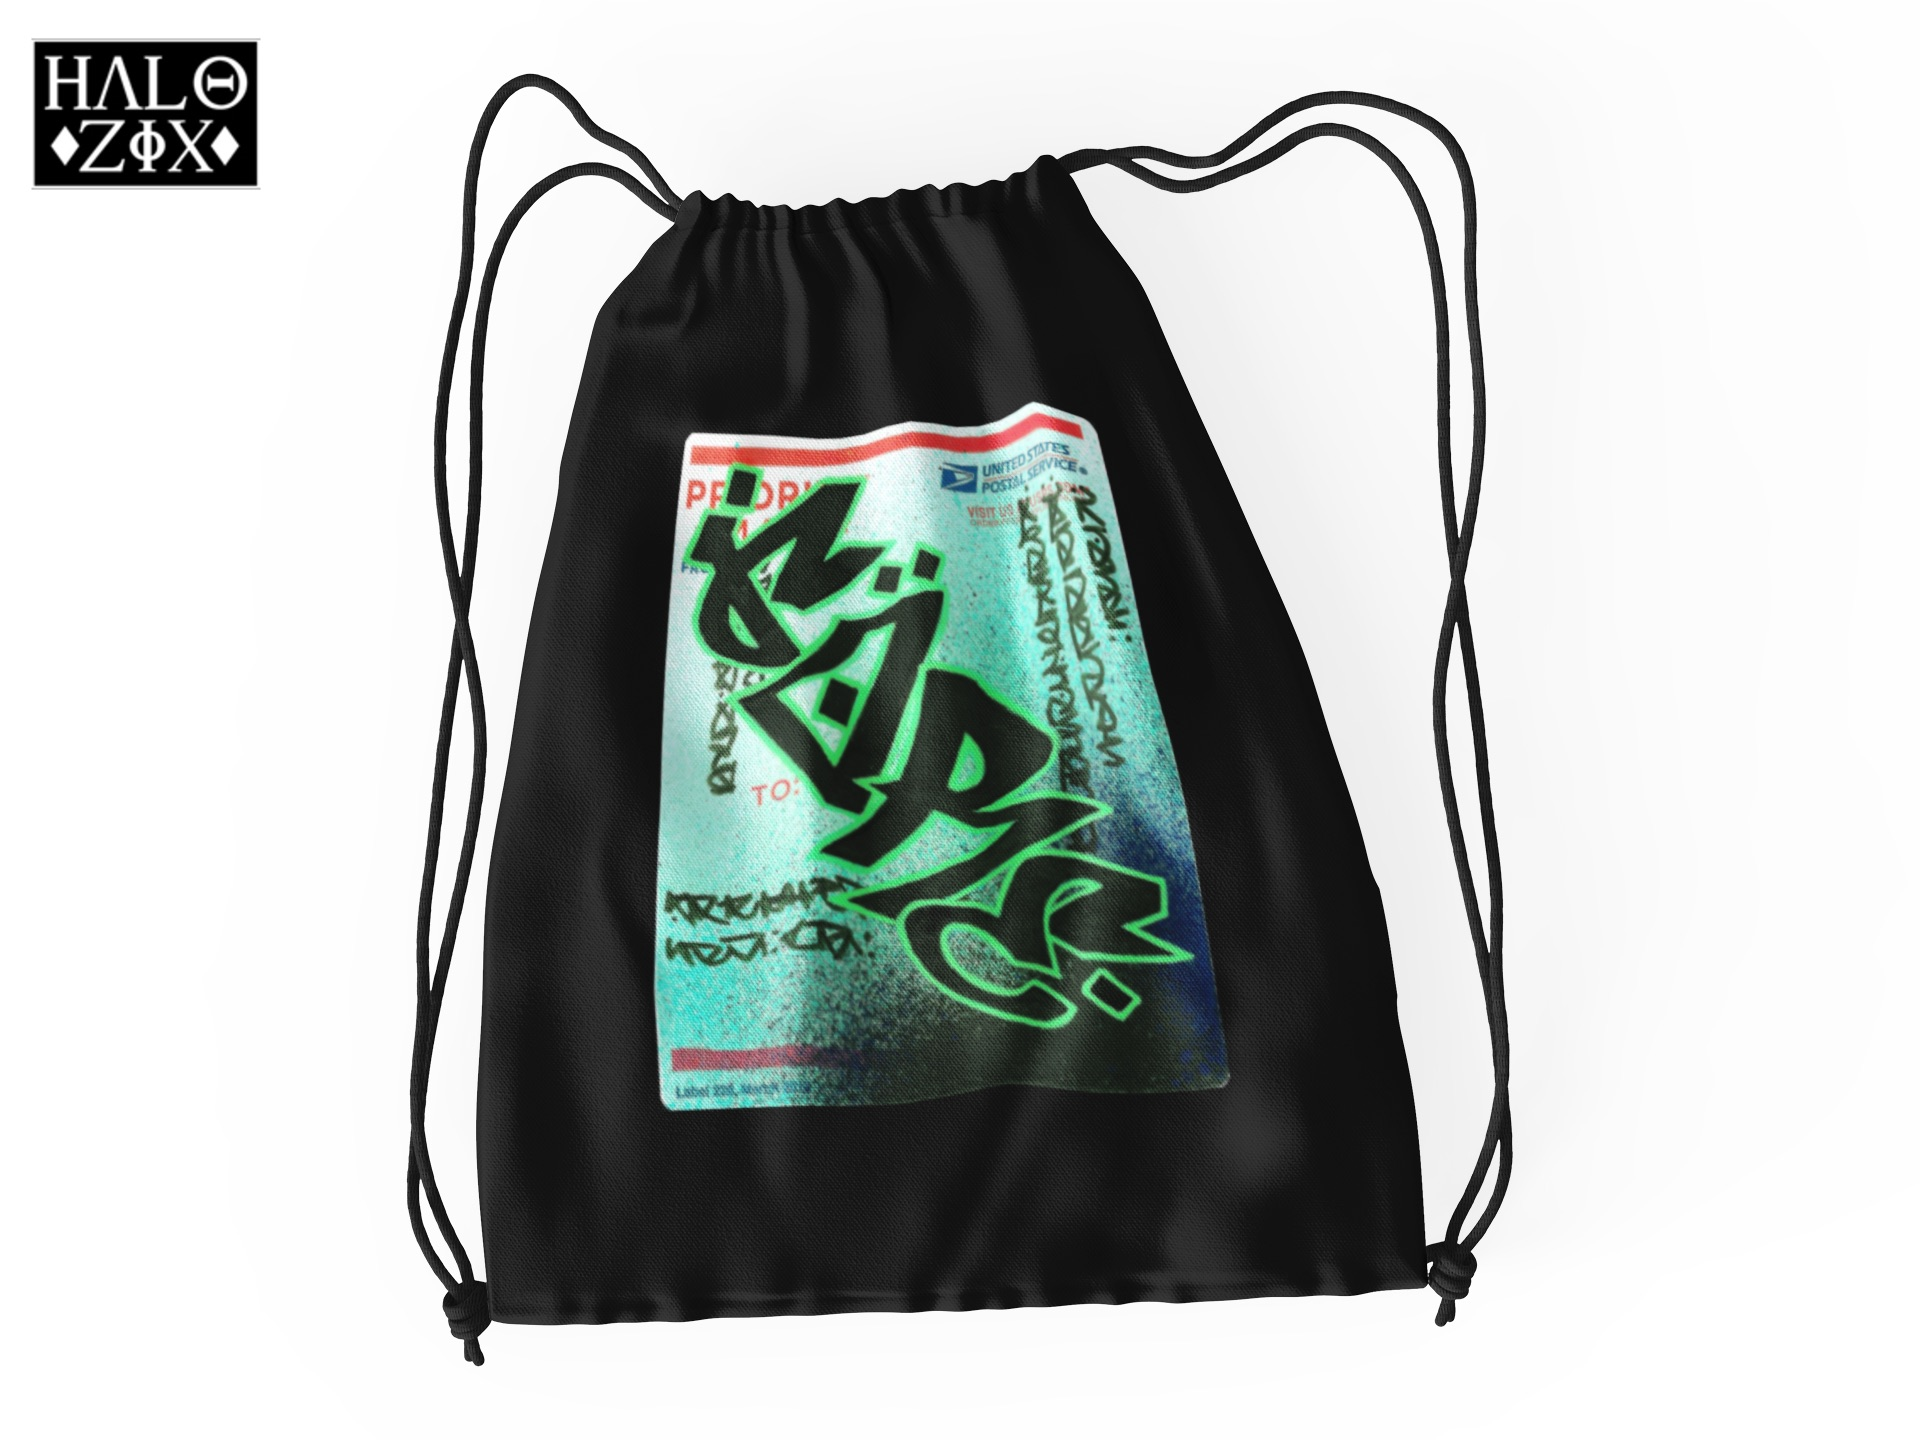 Gore Drawstring Bag NEW